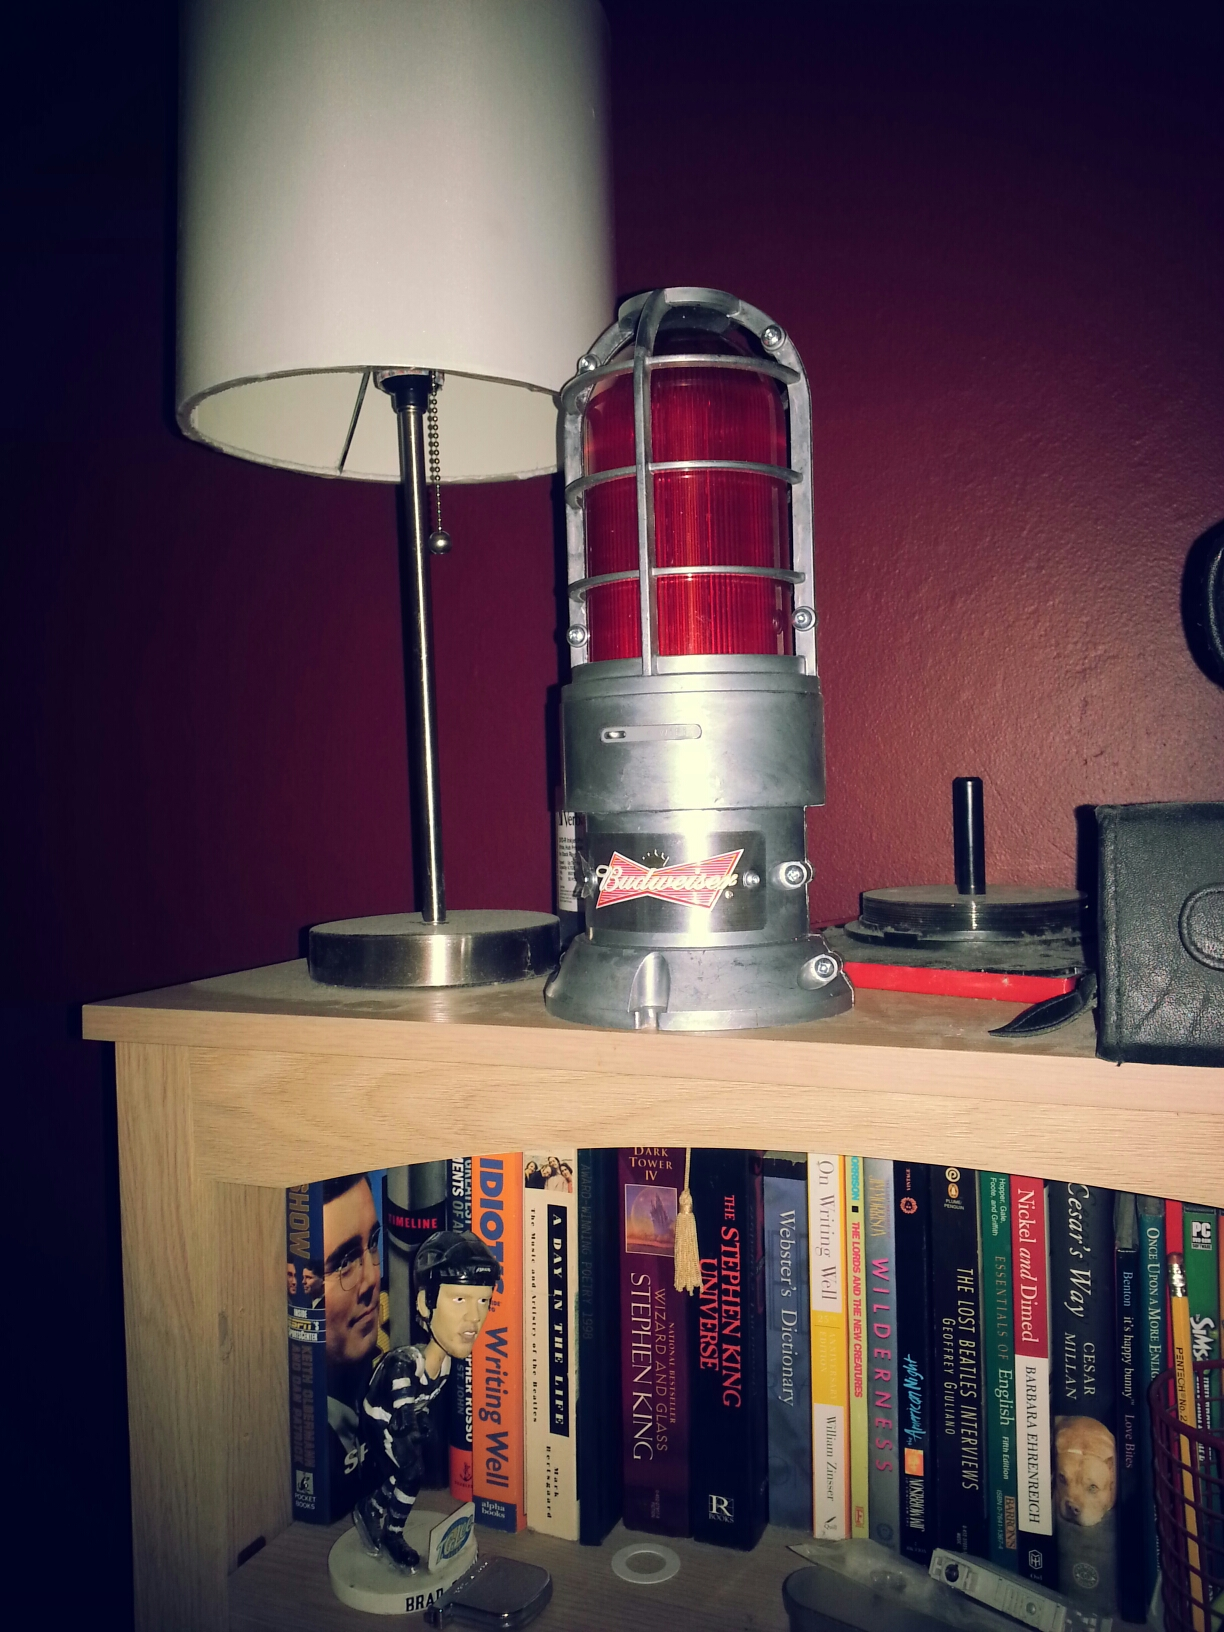 The Budweiser Red Light sitting on a bookshelf. Where else was I supposed to put it?